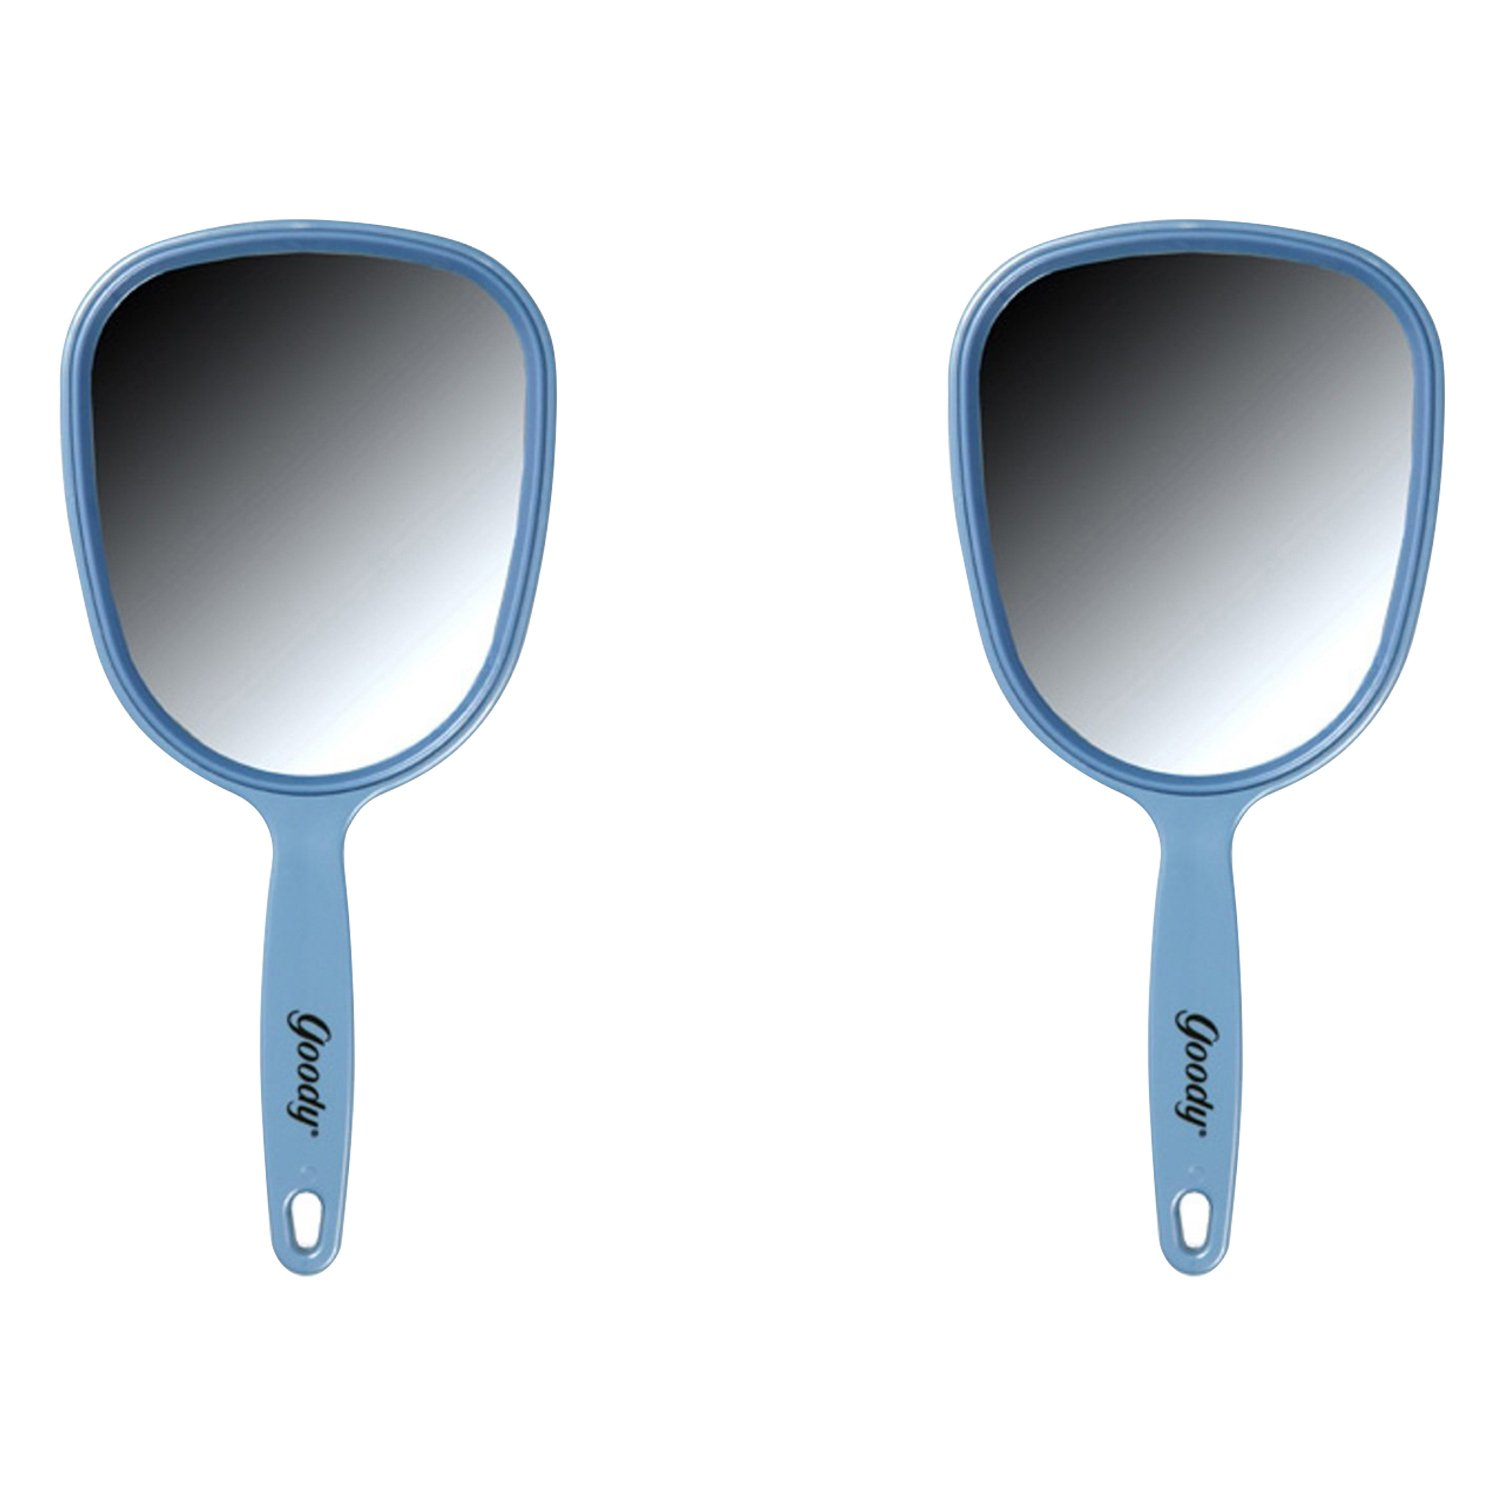 Goody Full Size Hand Mirror (11 1/4 Inches), (Color may vary) ([2-Pack) by Goody